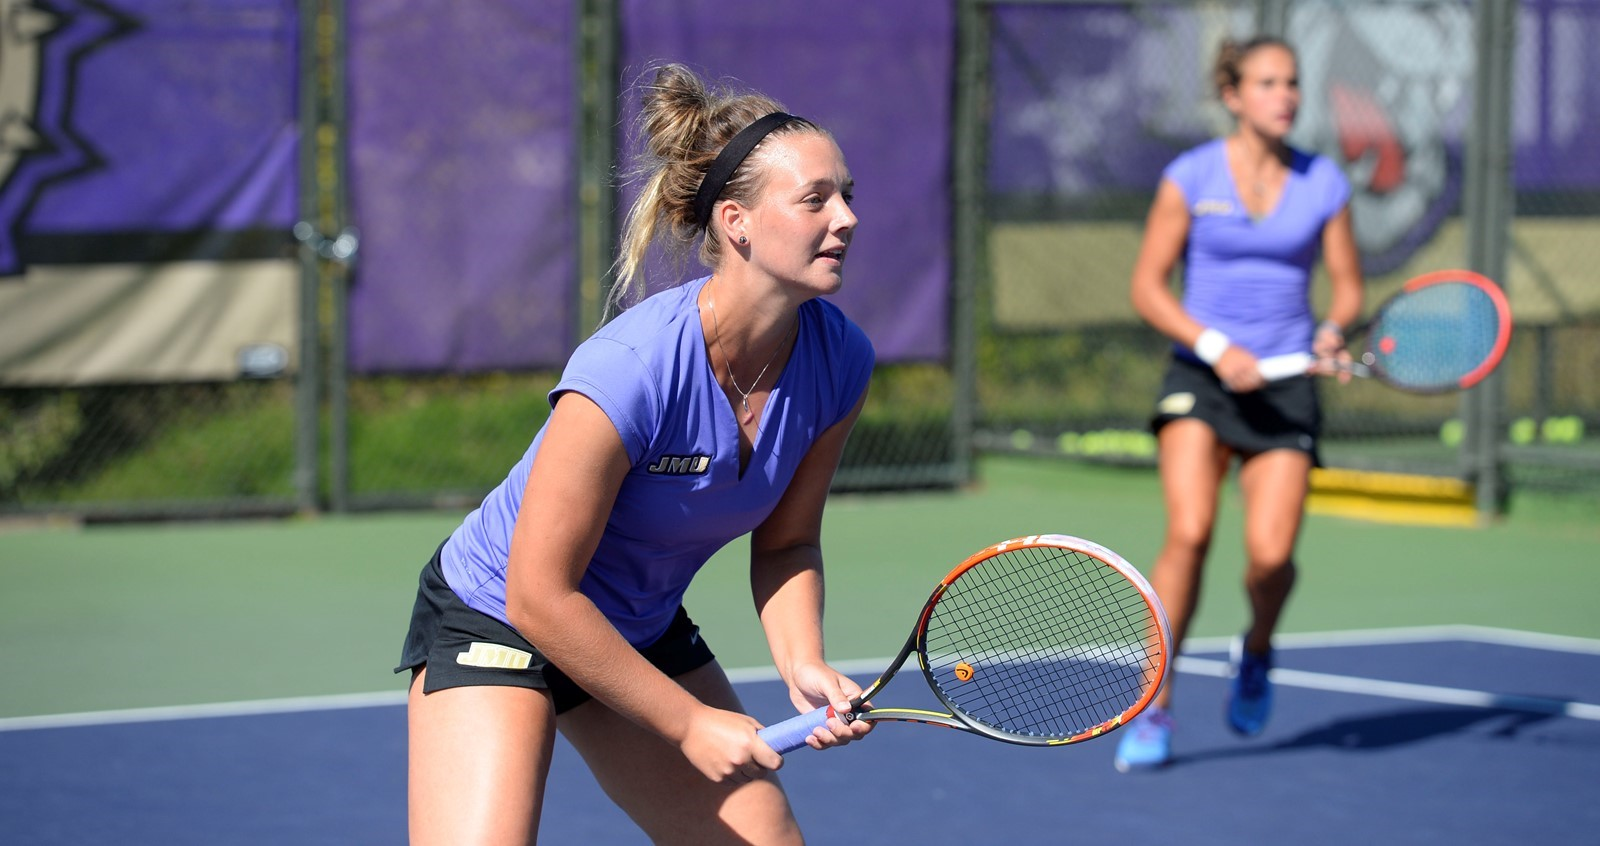 Women's Tennis: JMU Rolls to 7-0 Win at Navy